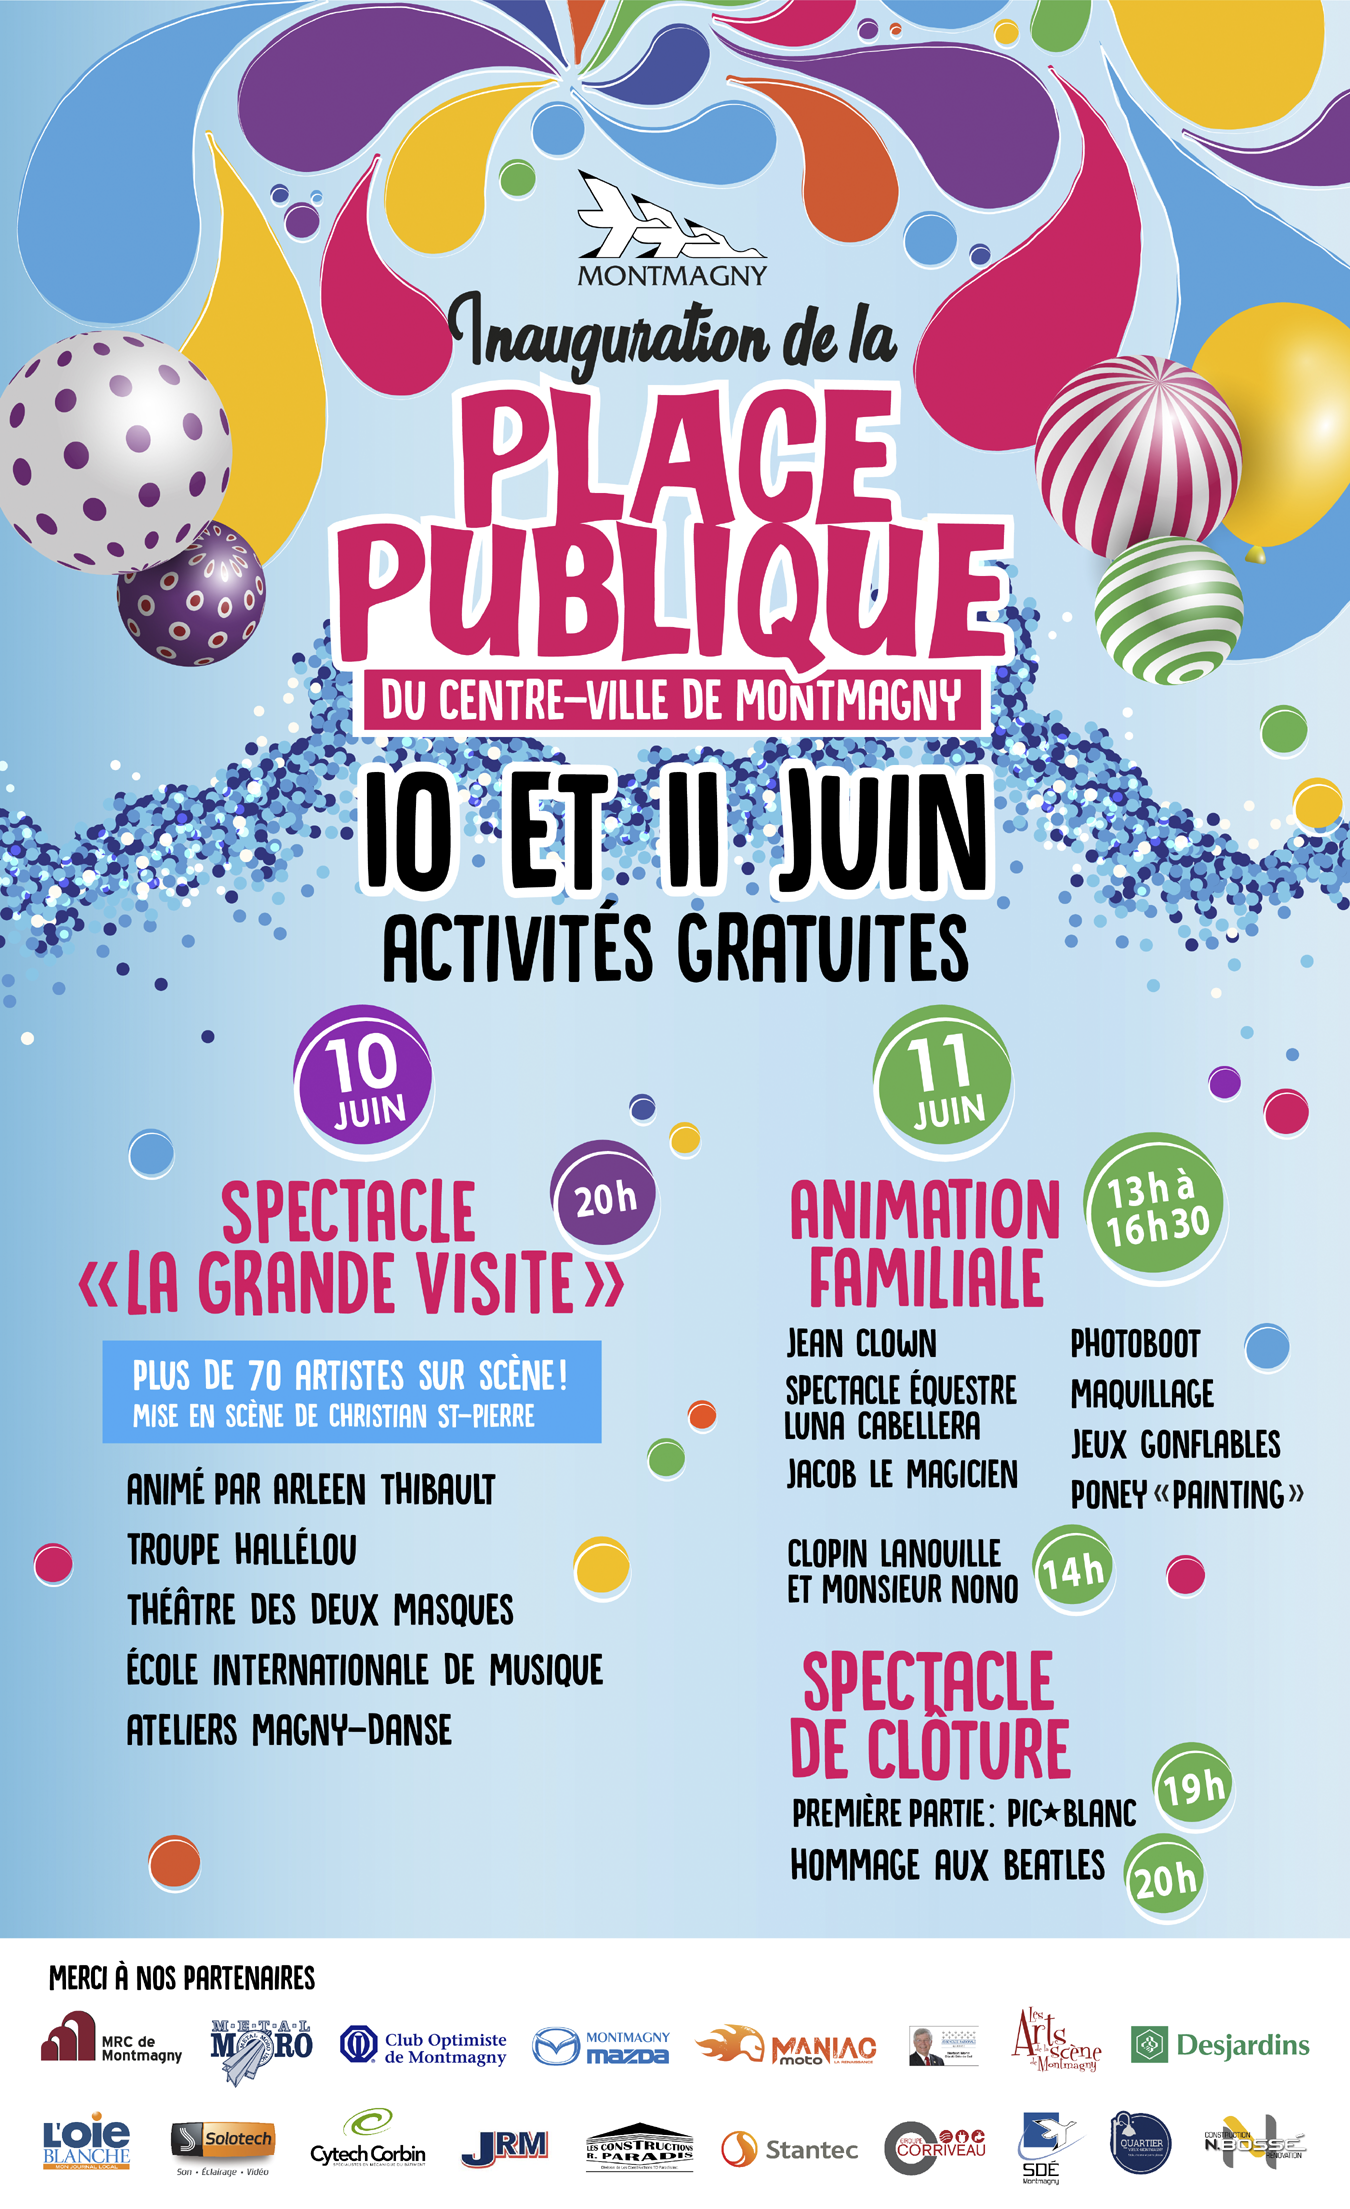 Inauguration de la place publique_programmation